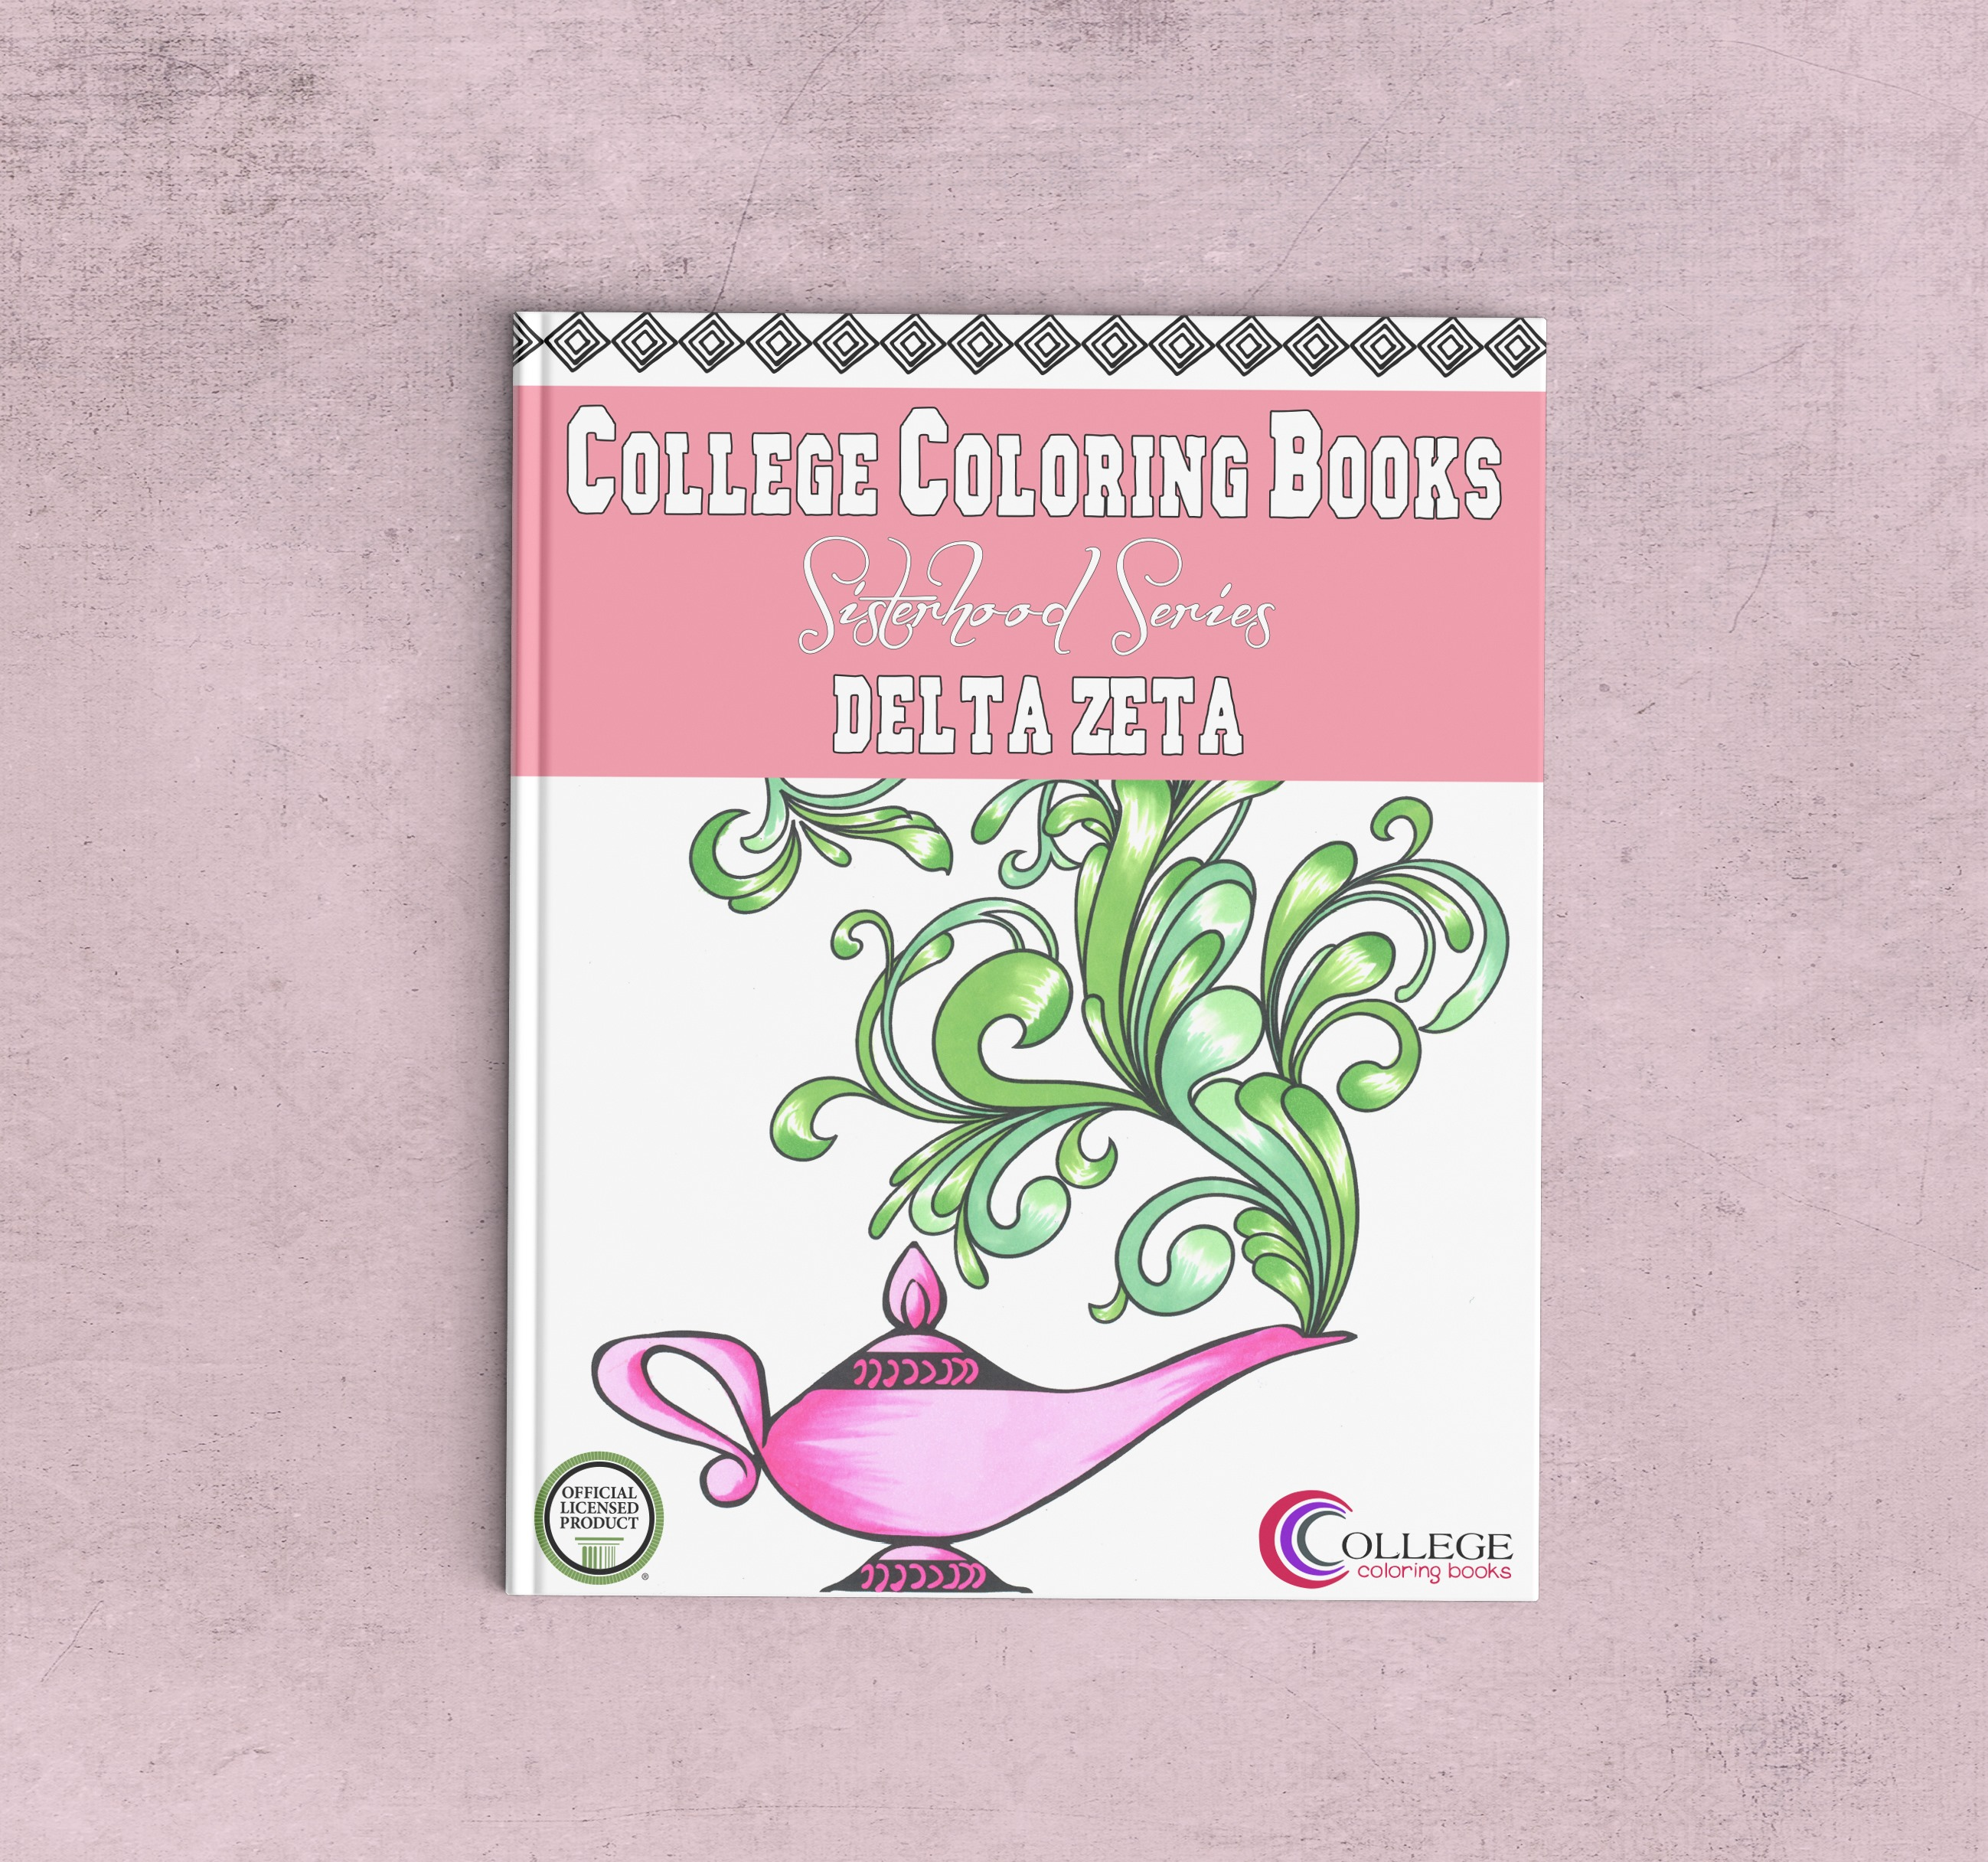 College Coloring Books Delta Zeta Coloring Book Cover - Front